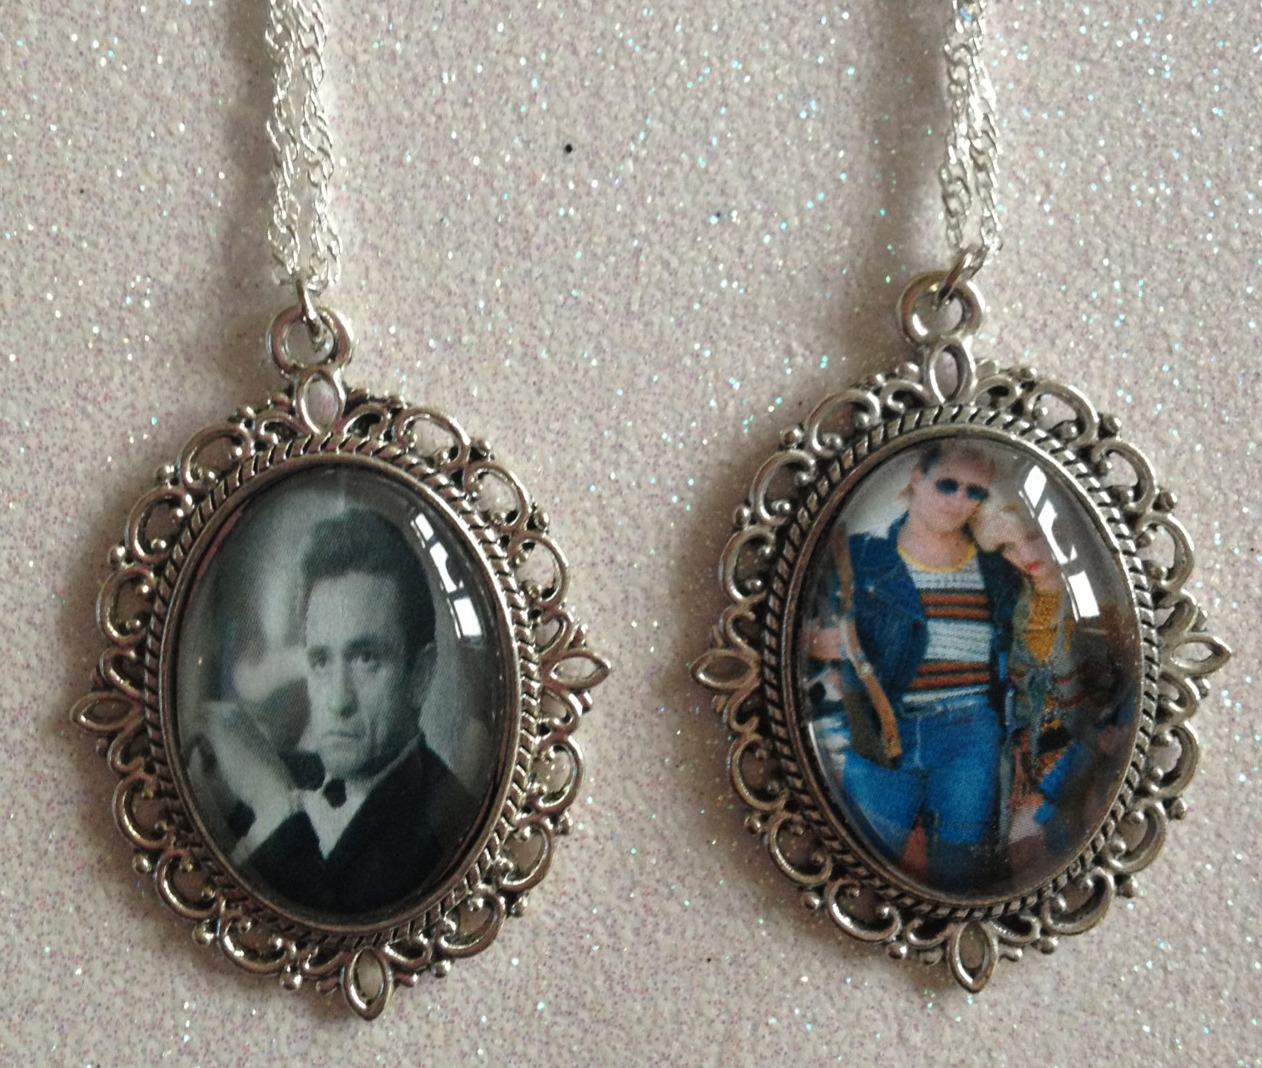 Here are a couple of custom necklaces I made at the weekend! If you would like anything personalised made please message me :)